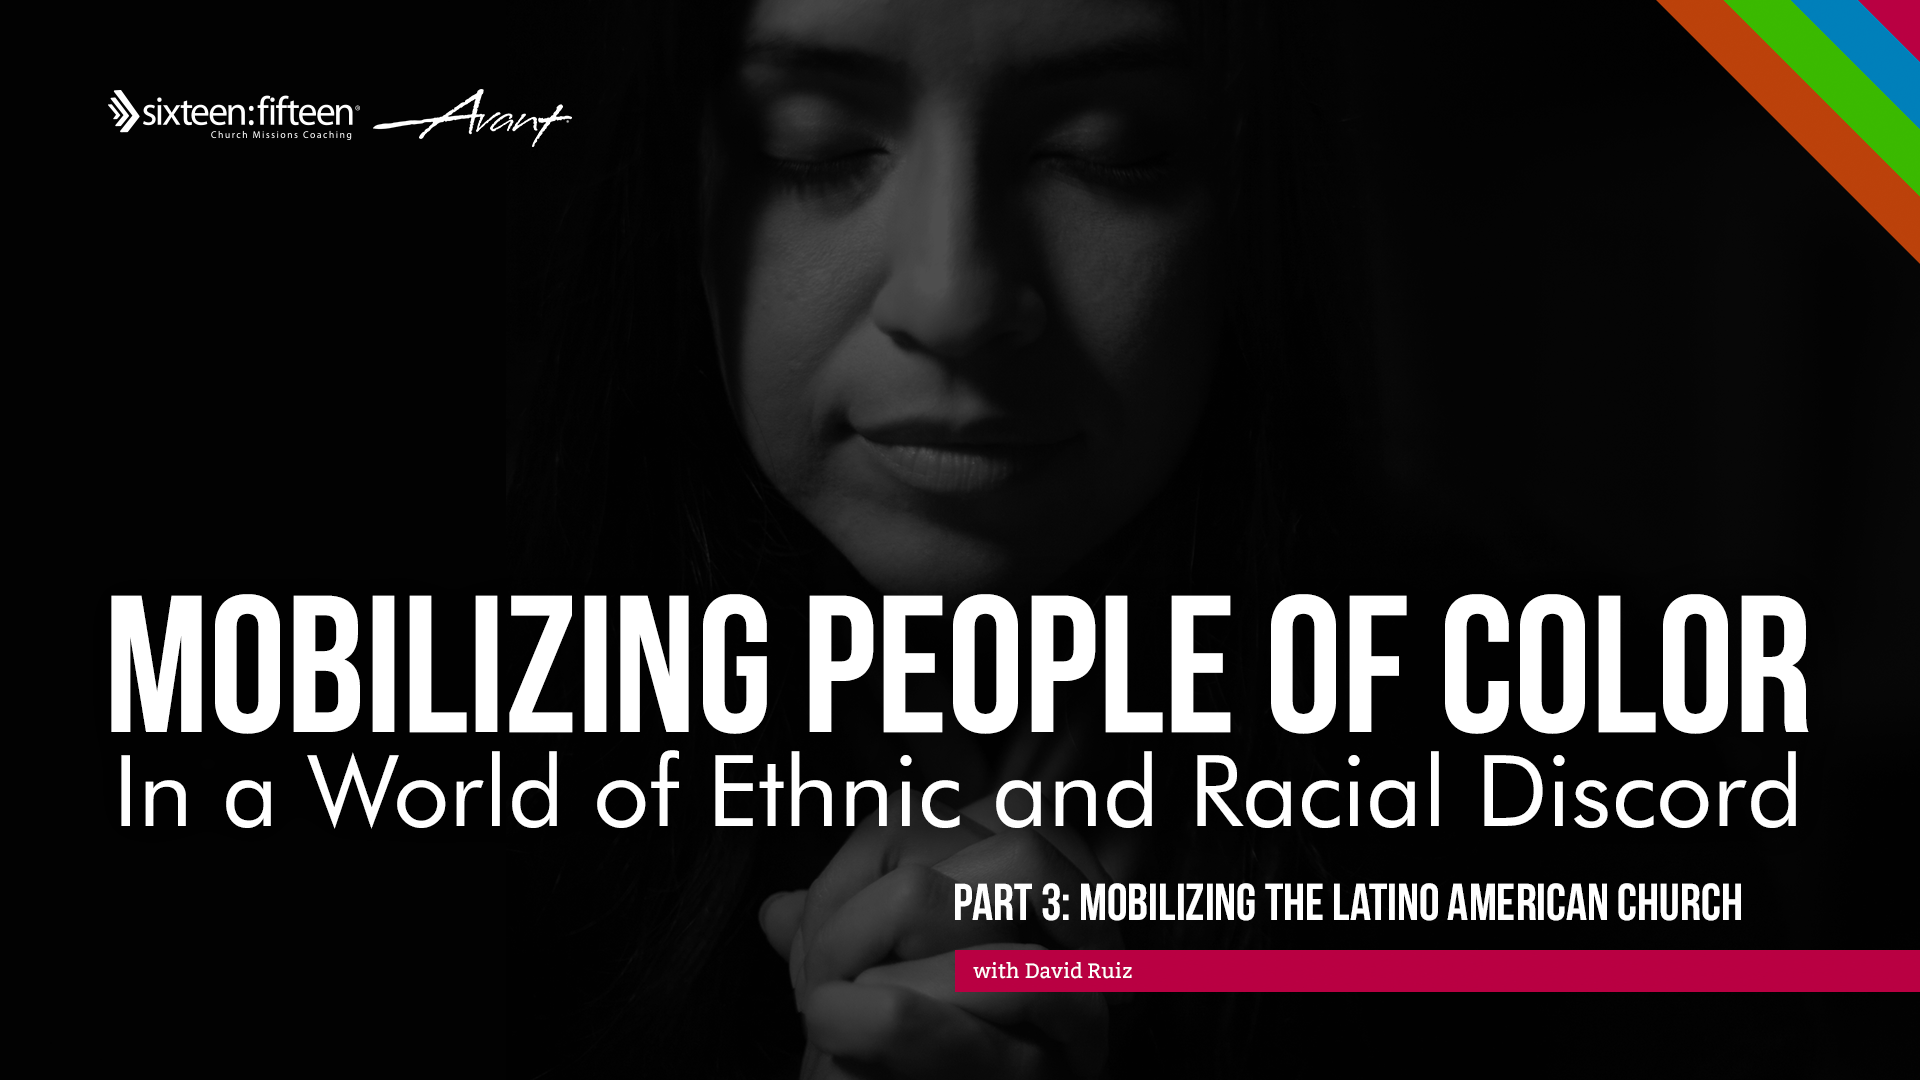 May 13, 2021 | Webinar | Part 3 Mobilizing POC: the Latino American Church